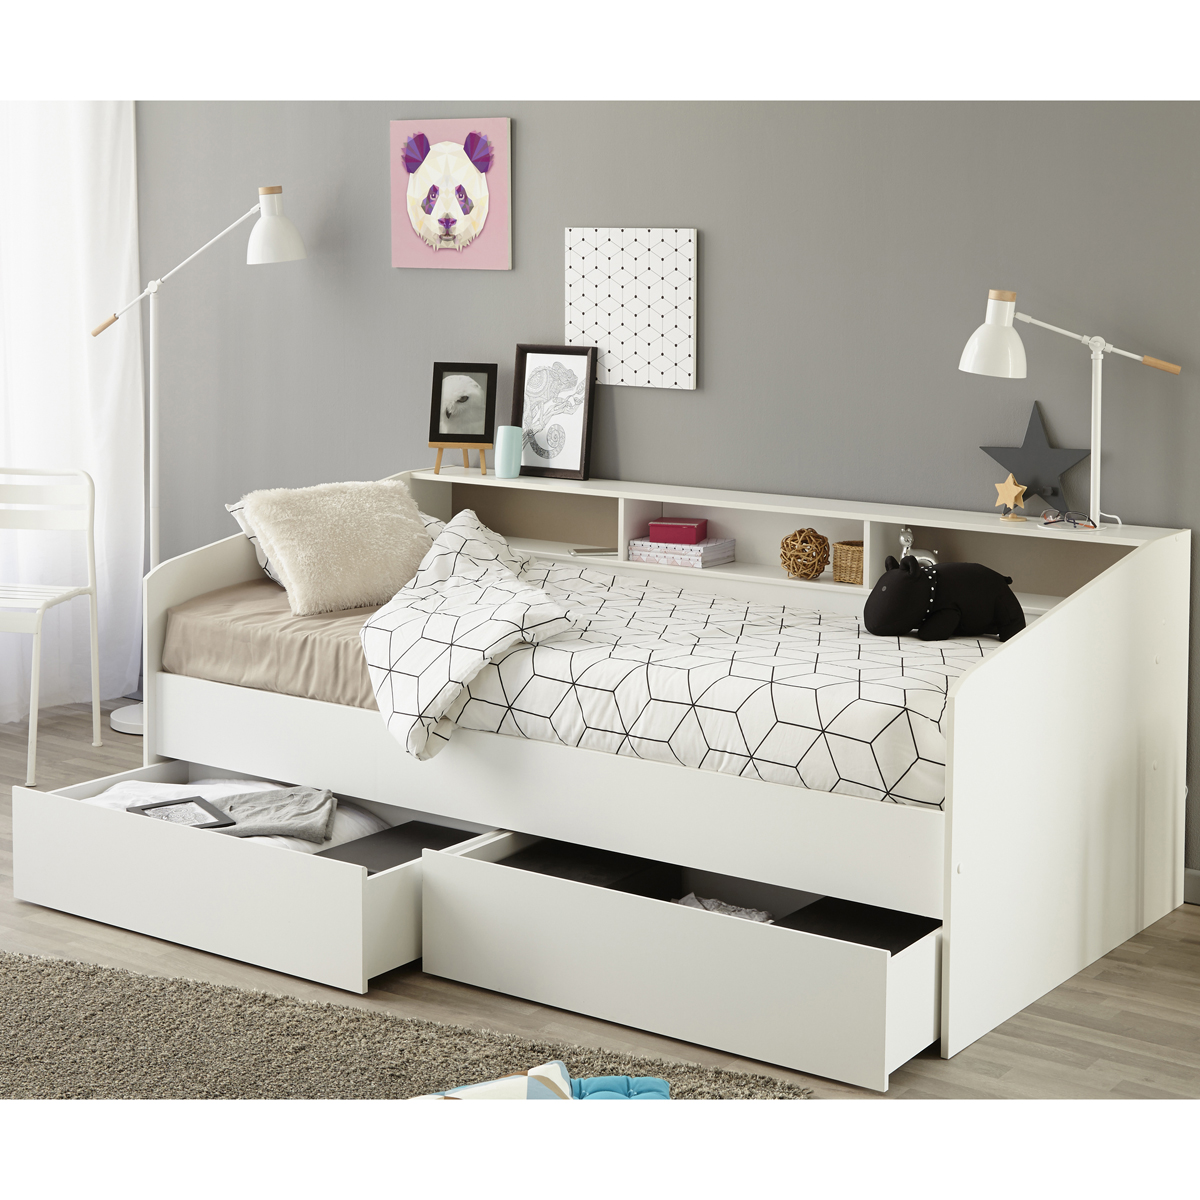 einzelbett bett in wei mit ablage bettschubkasten 90x200 ebay. Black Bedroom Furniture Sets. Home Design Ideas